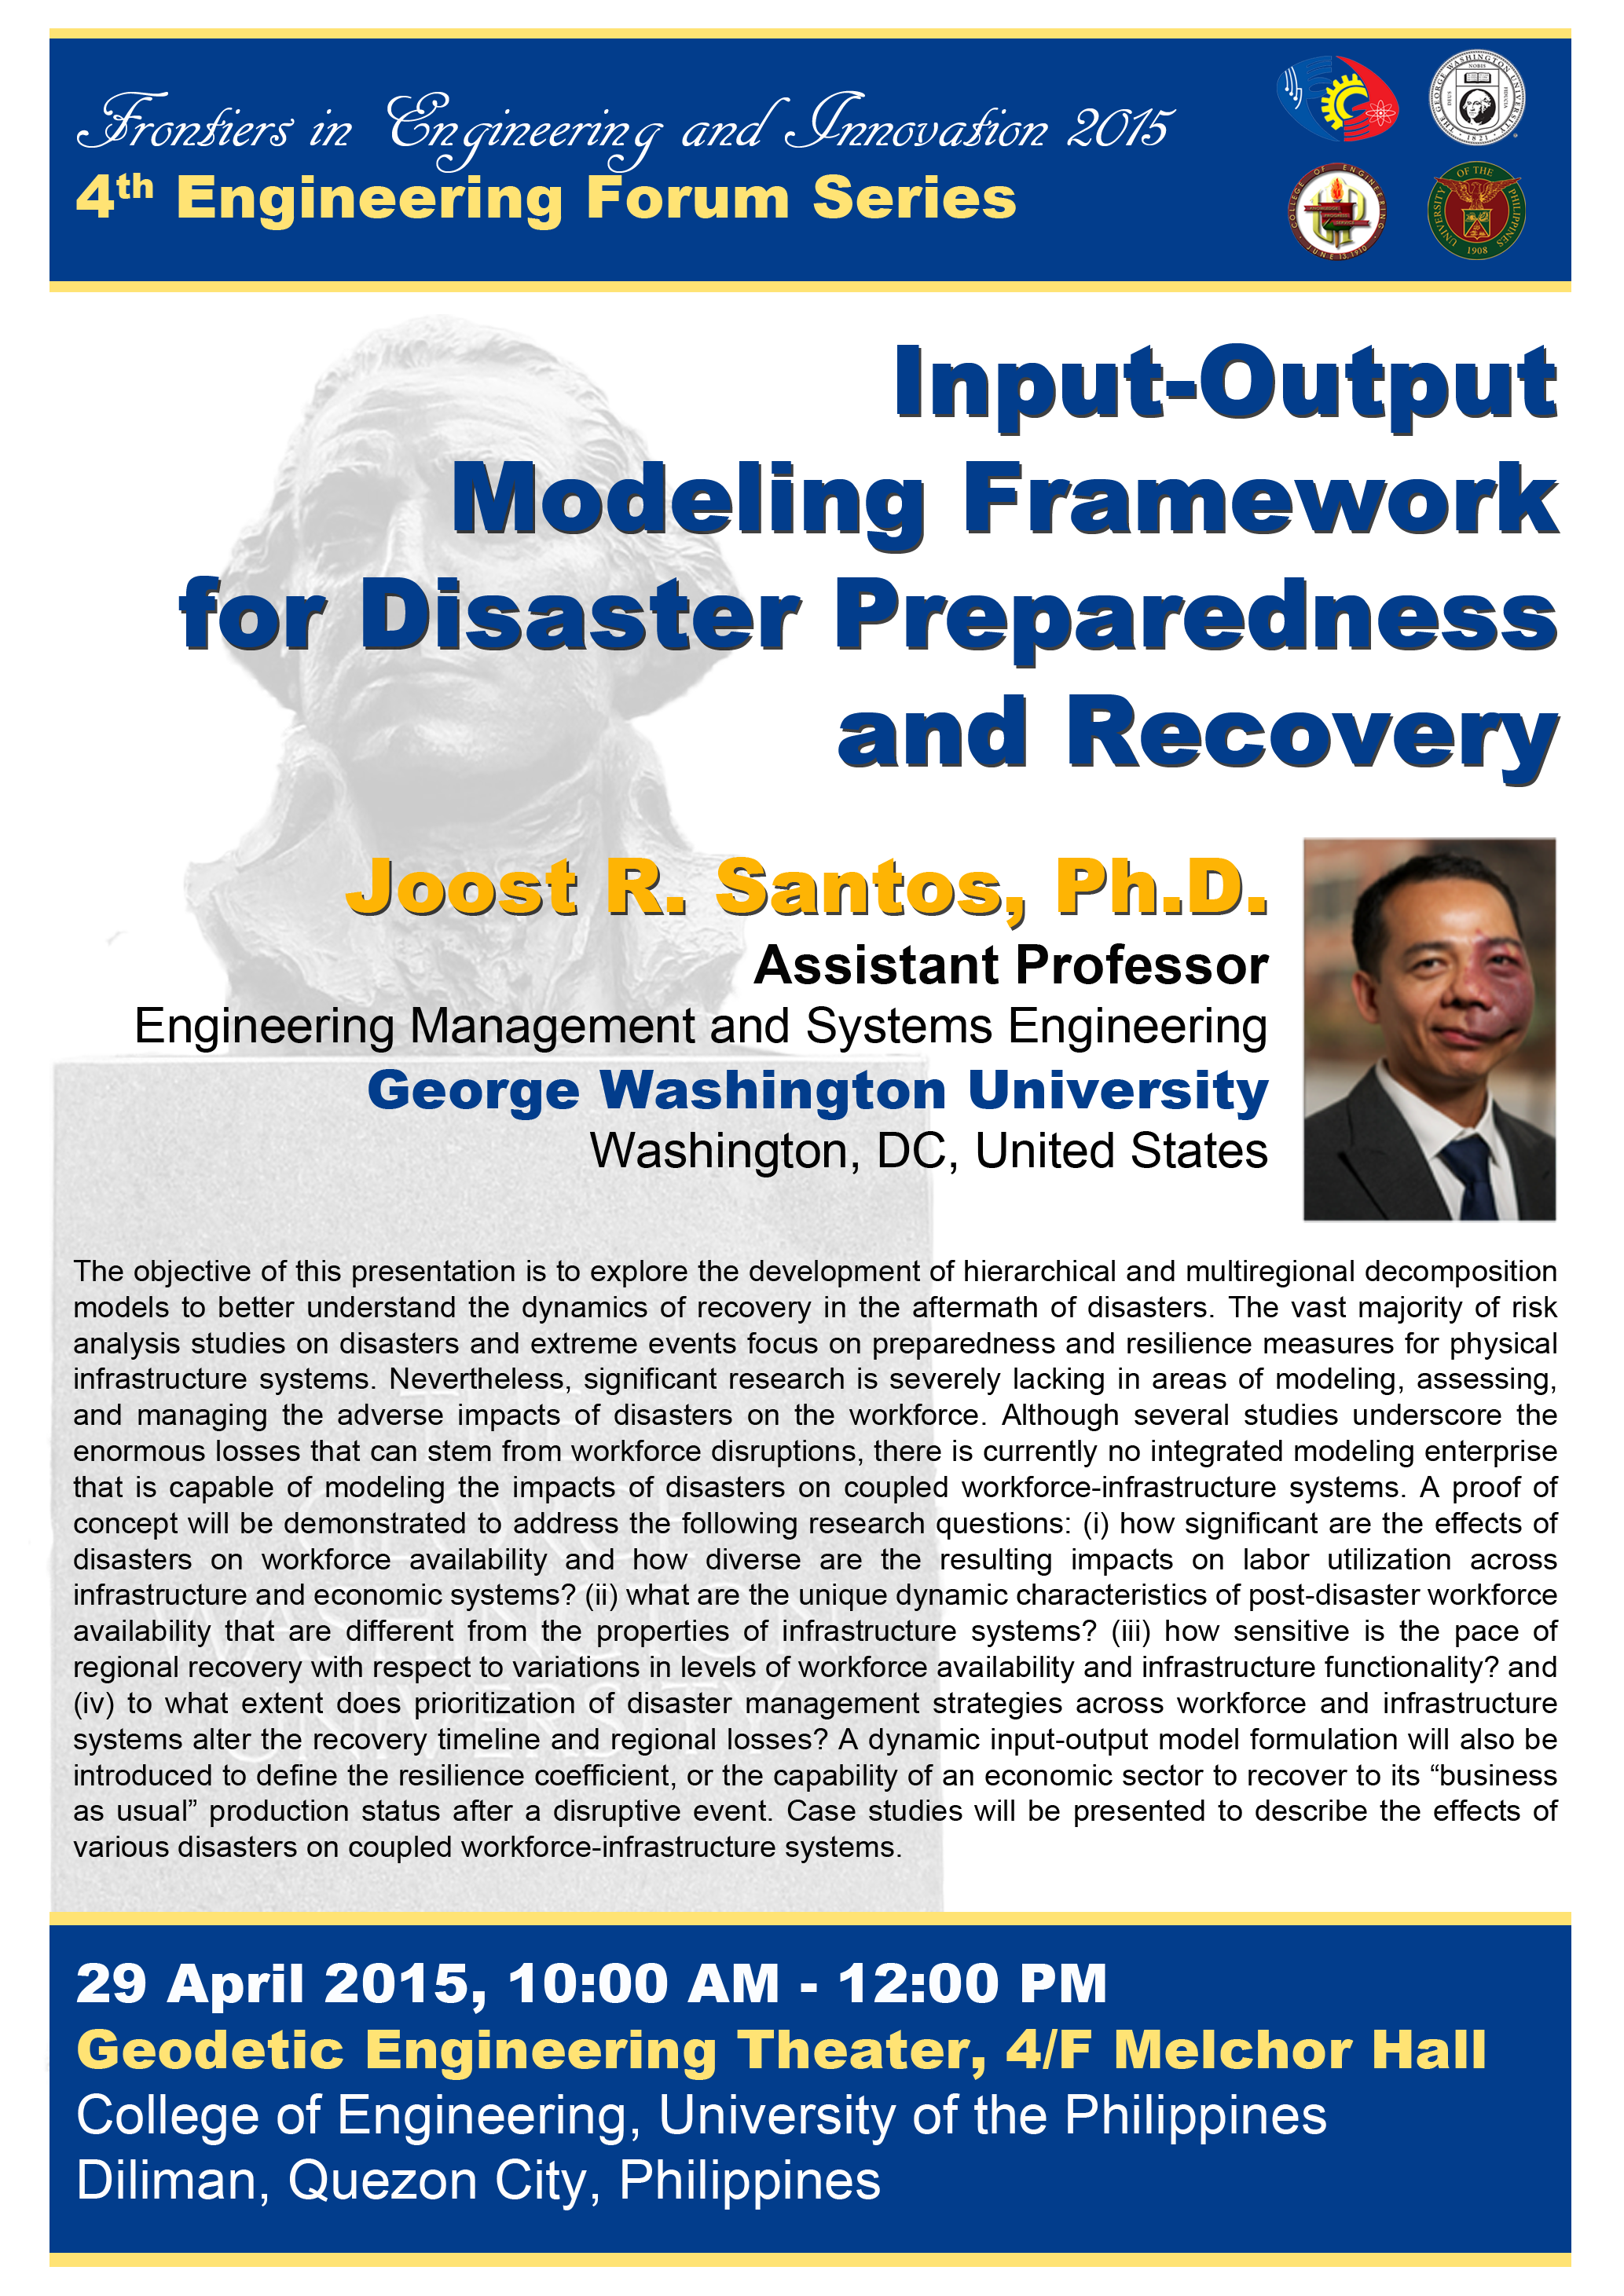 Input-Output Modeling Framework for Disaster Preparedness and Recovery